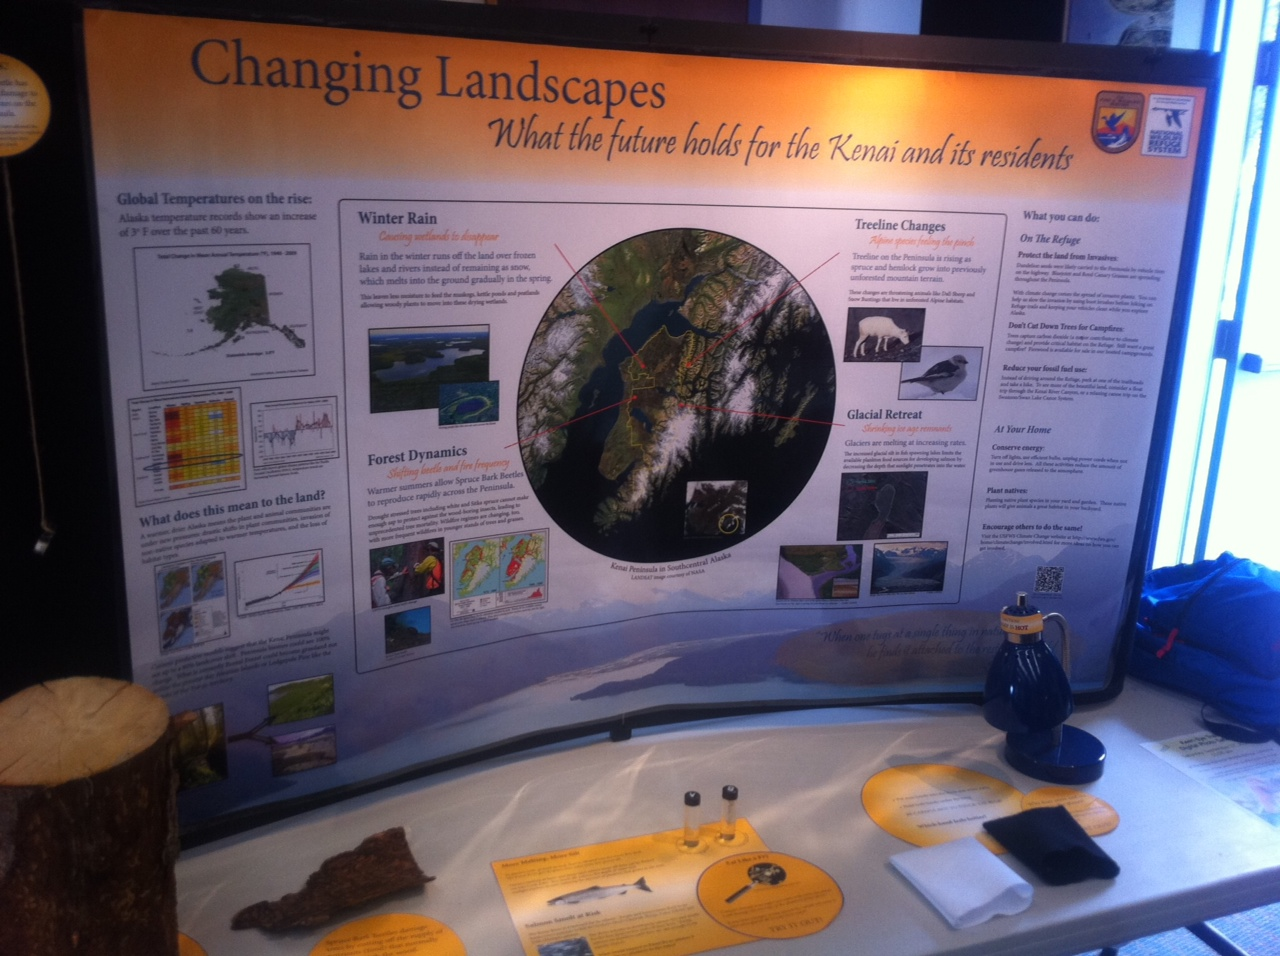 Changing Landscapes traveling display